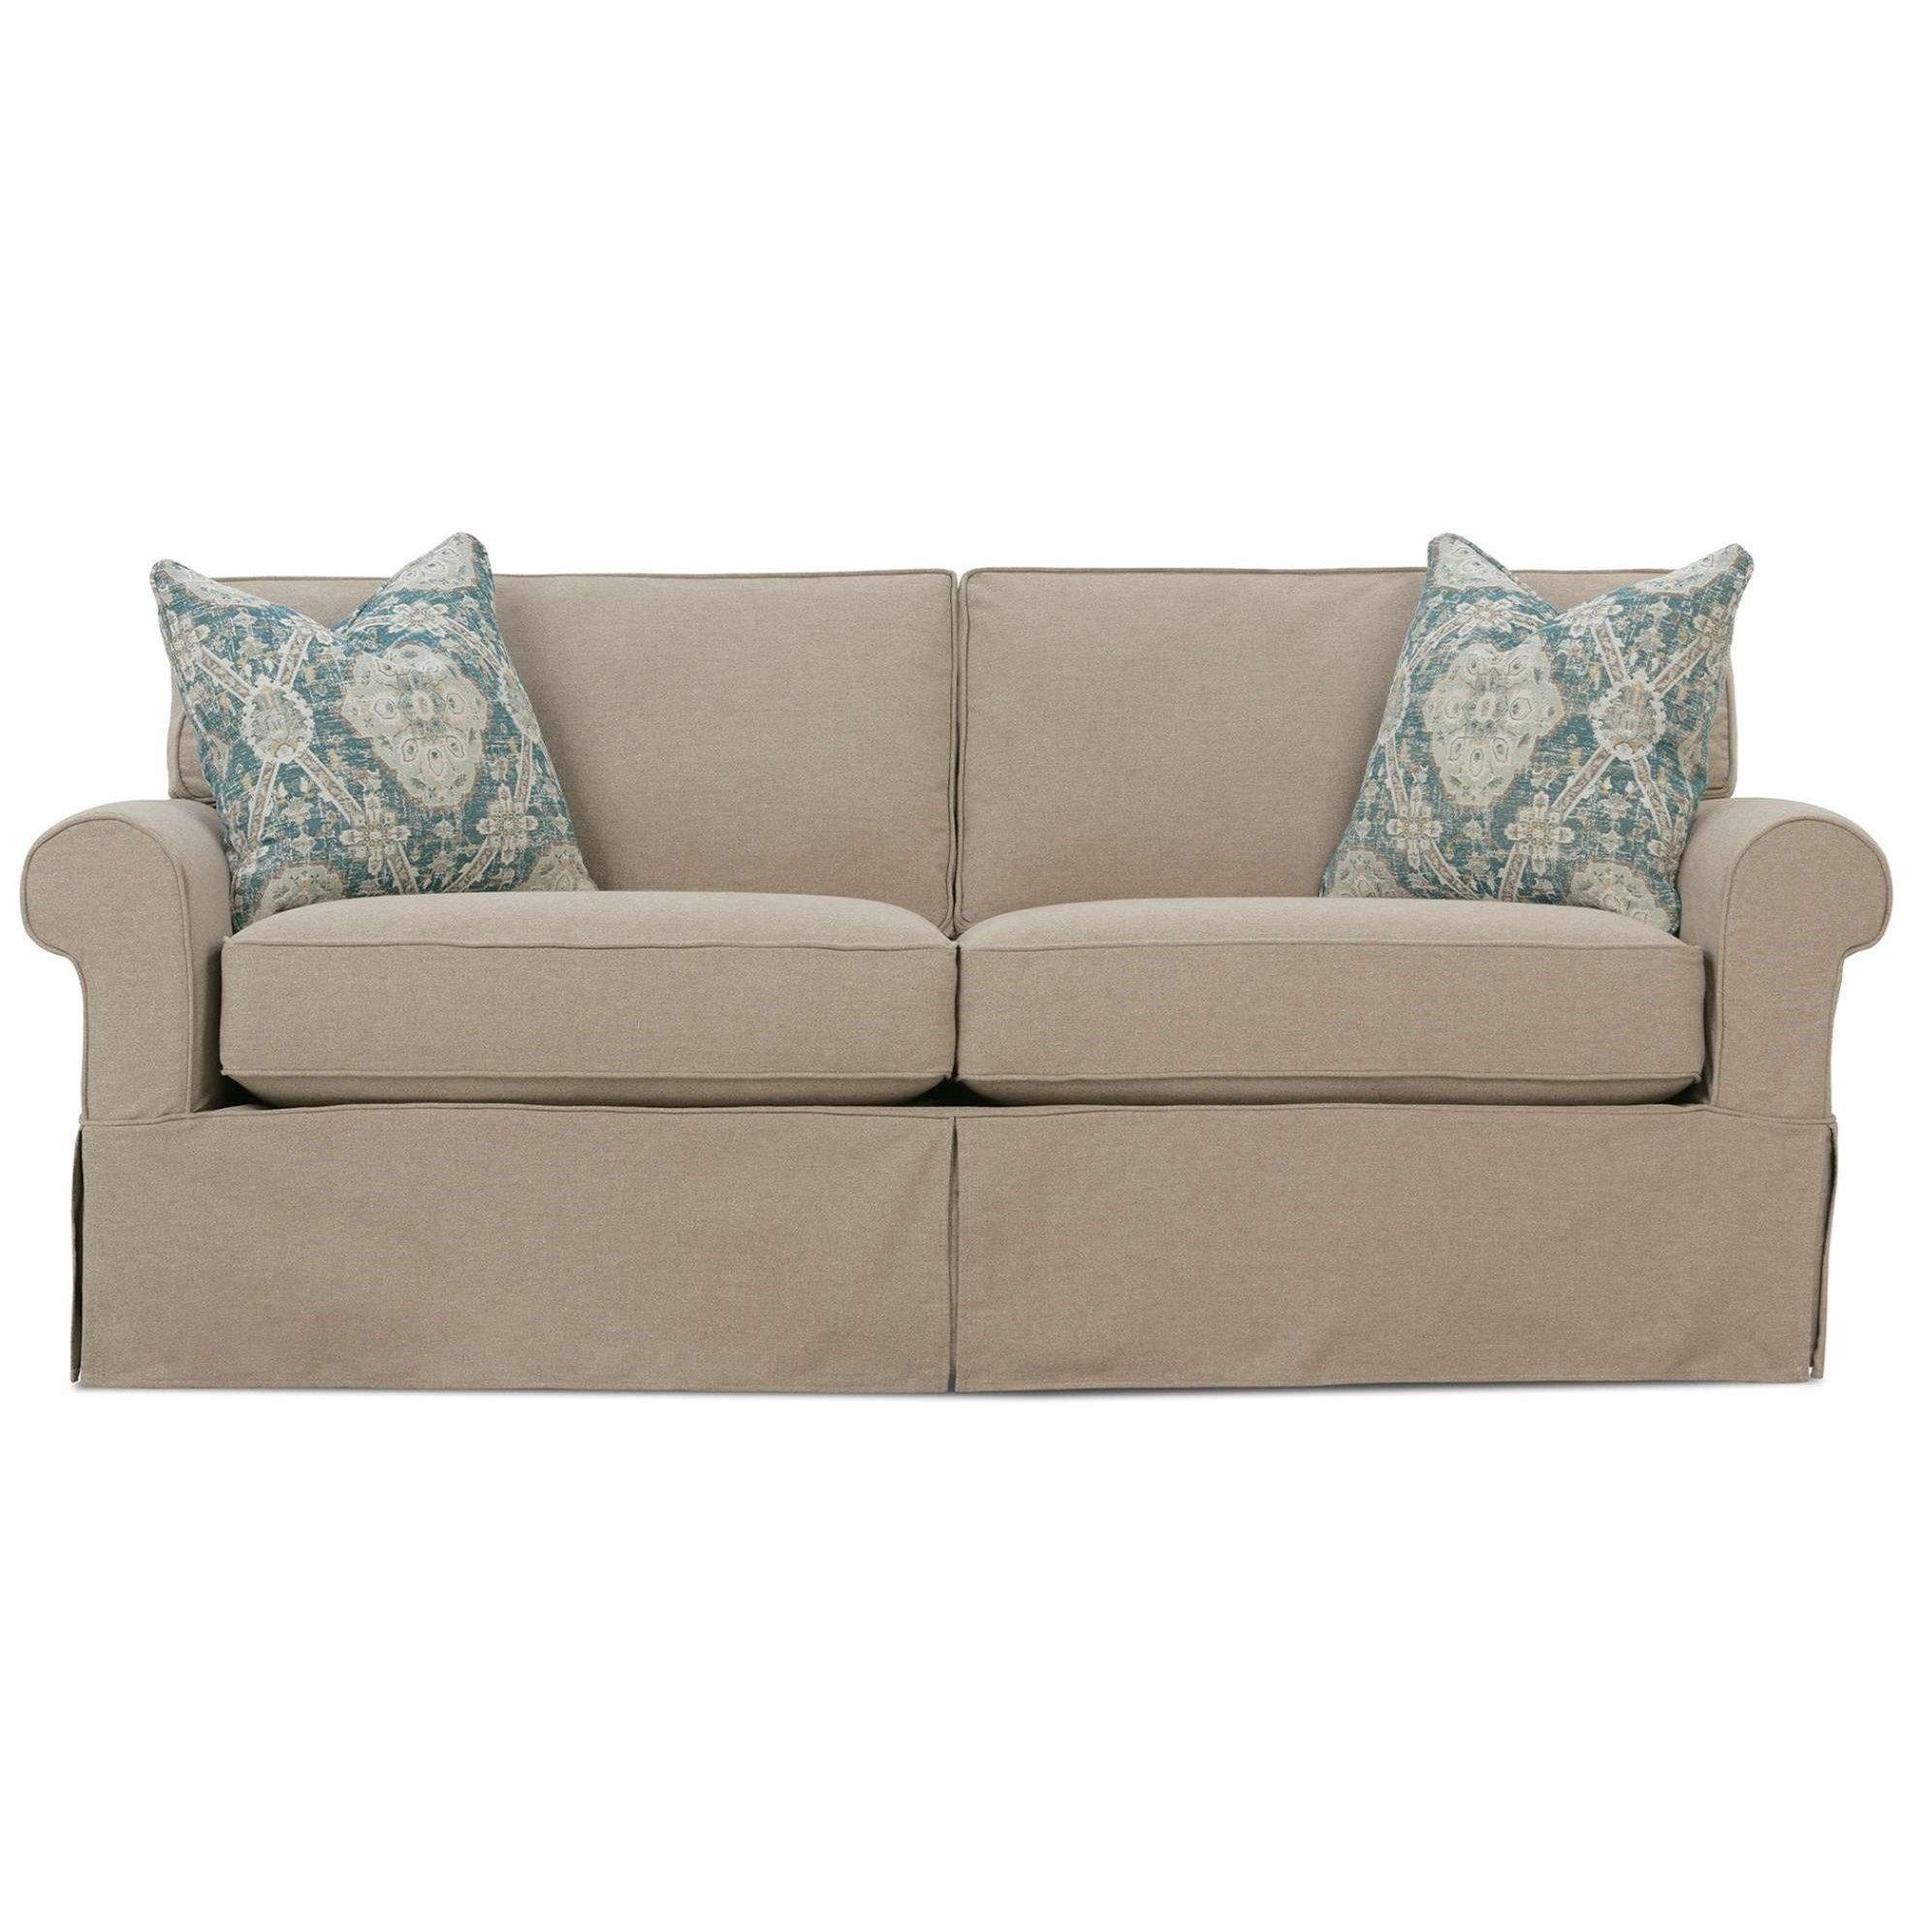 Nantucket  Two Seat Casual Sofa by Rowe at Baer's Furniture